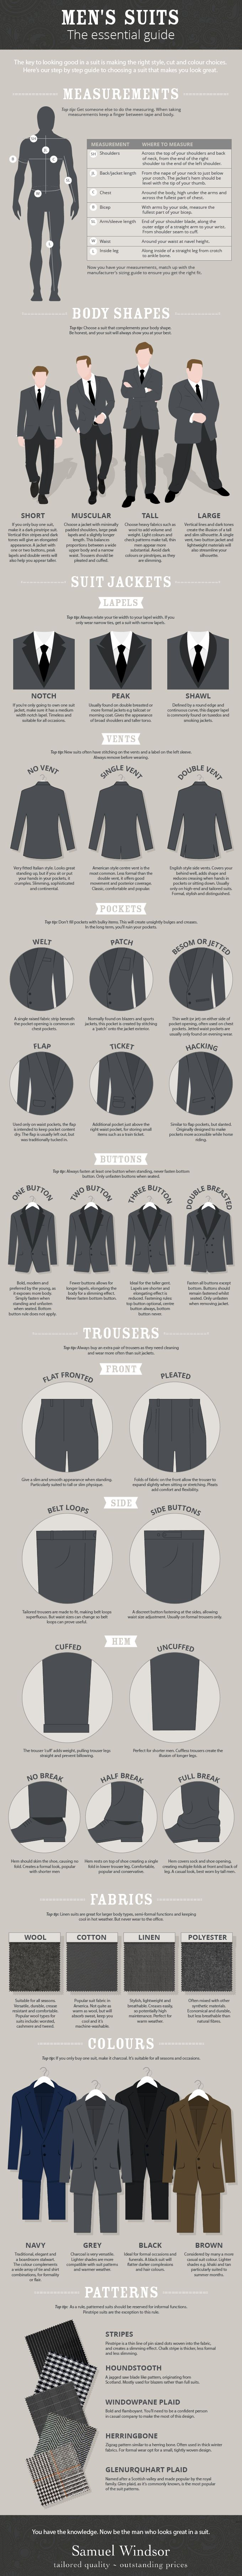 Learn how to choose the best suit for you, with the Samuel Windsor essential guide to mens suits. Get the knowledge. Be the man who looks great in a suit. #menweddingsuits